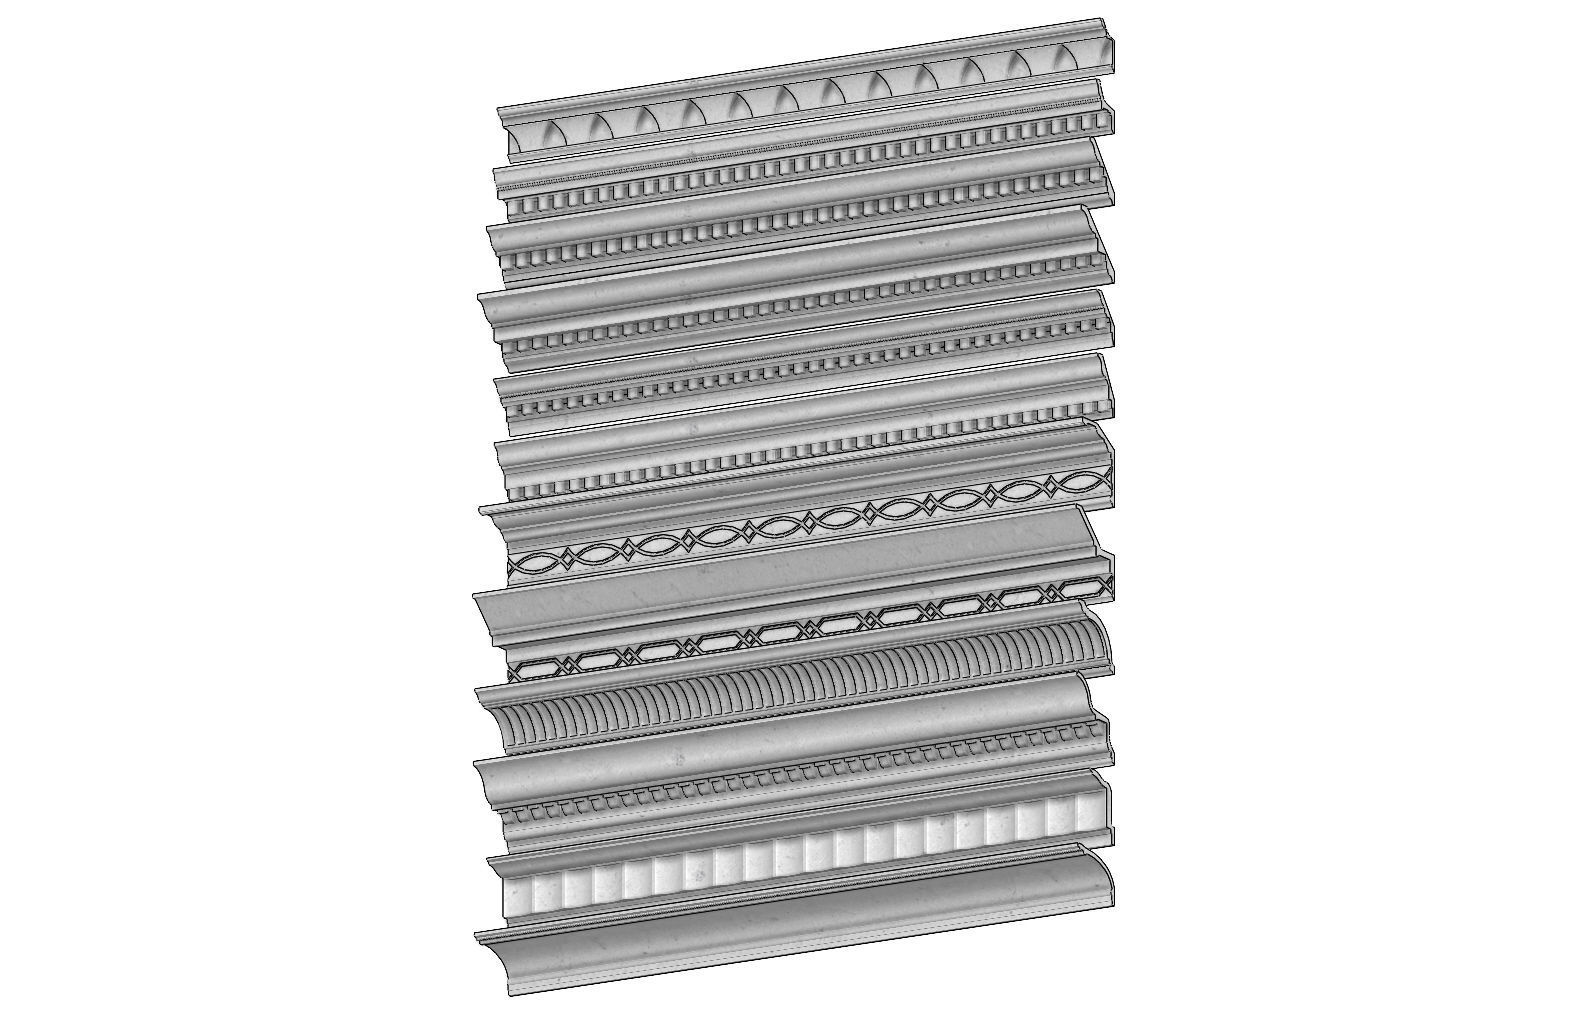 12 classical cornices and friezes  for plaster and wood workings